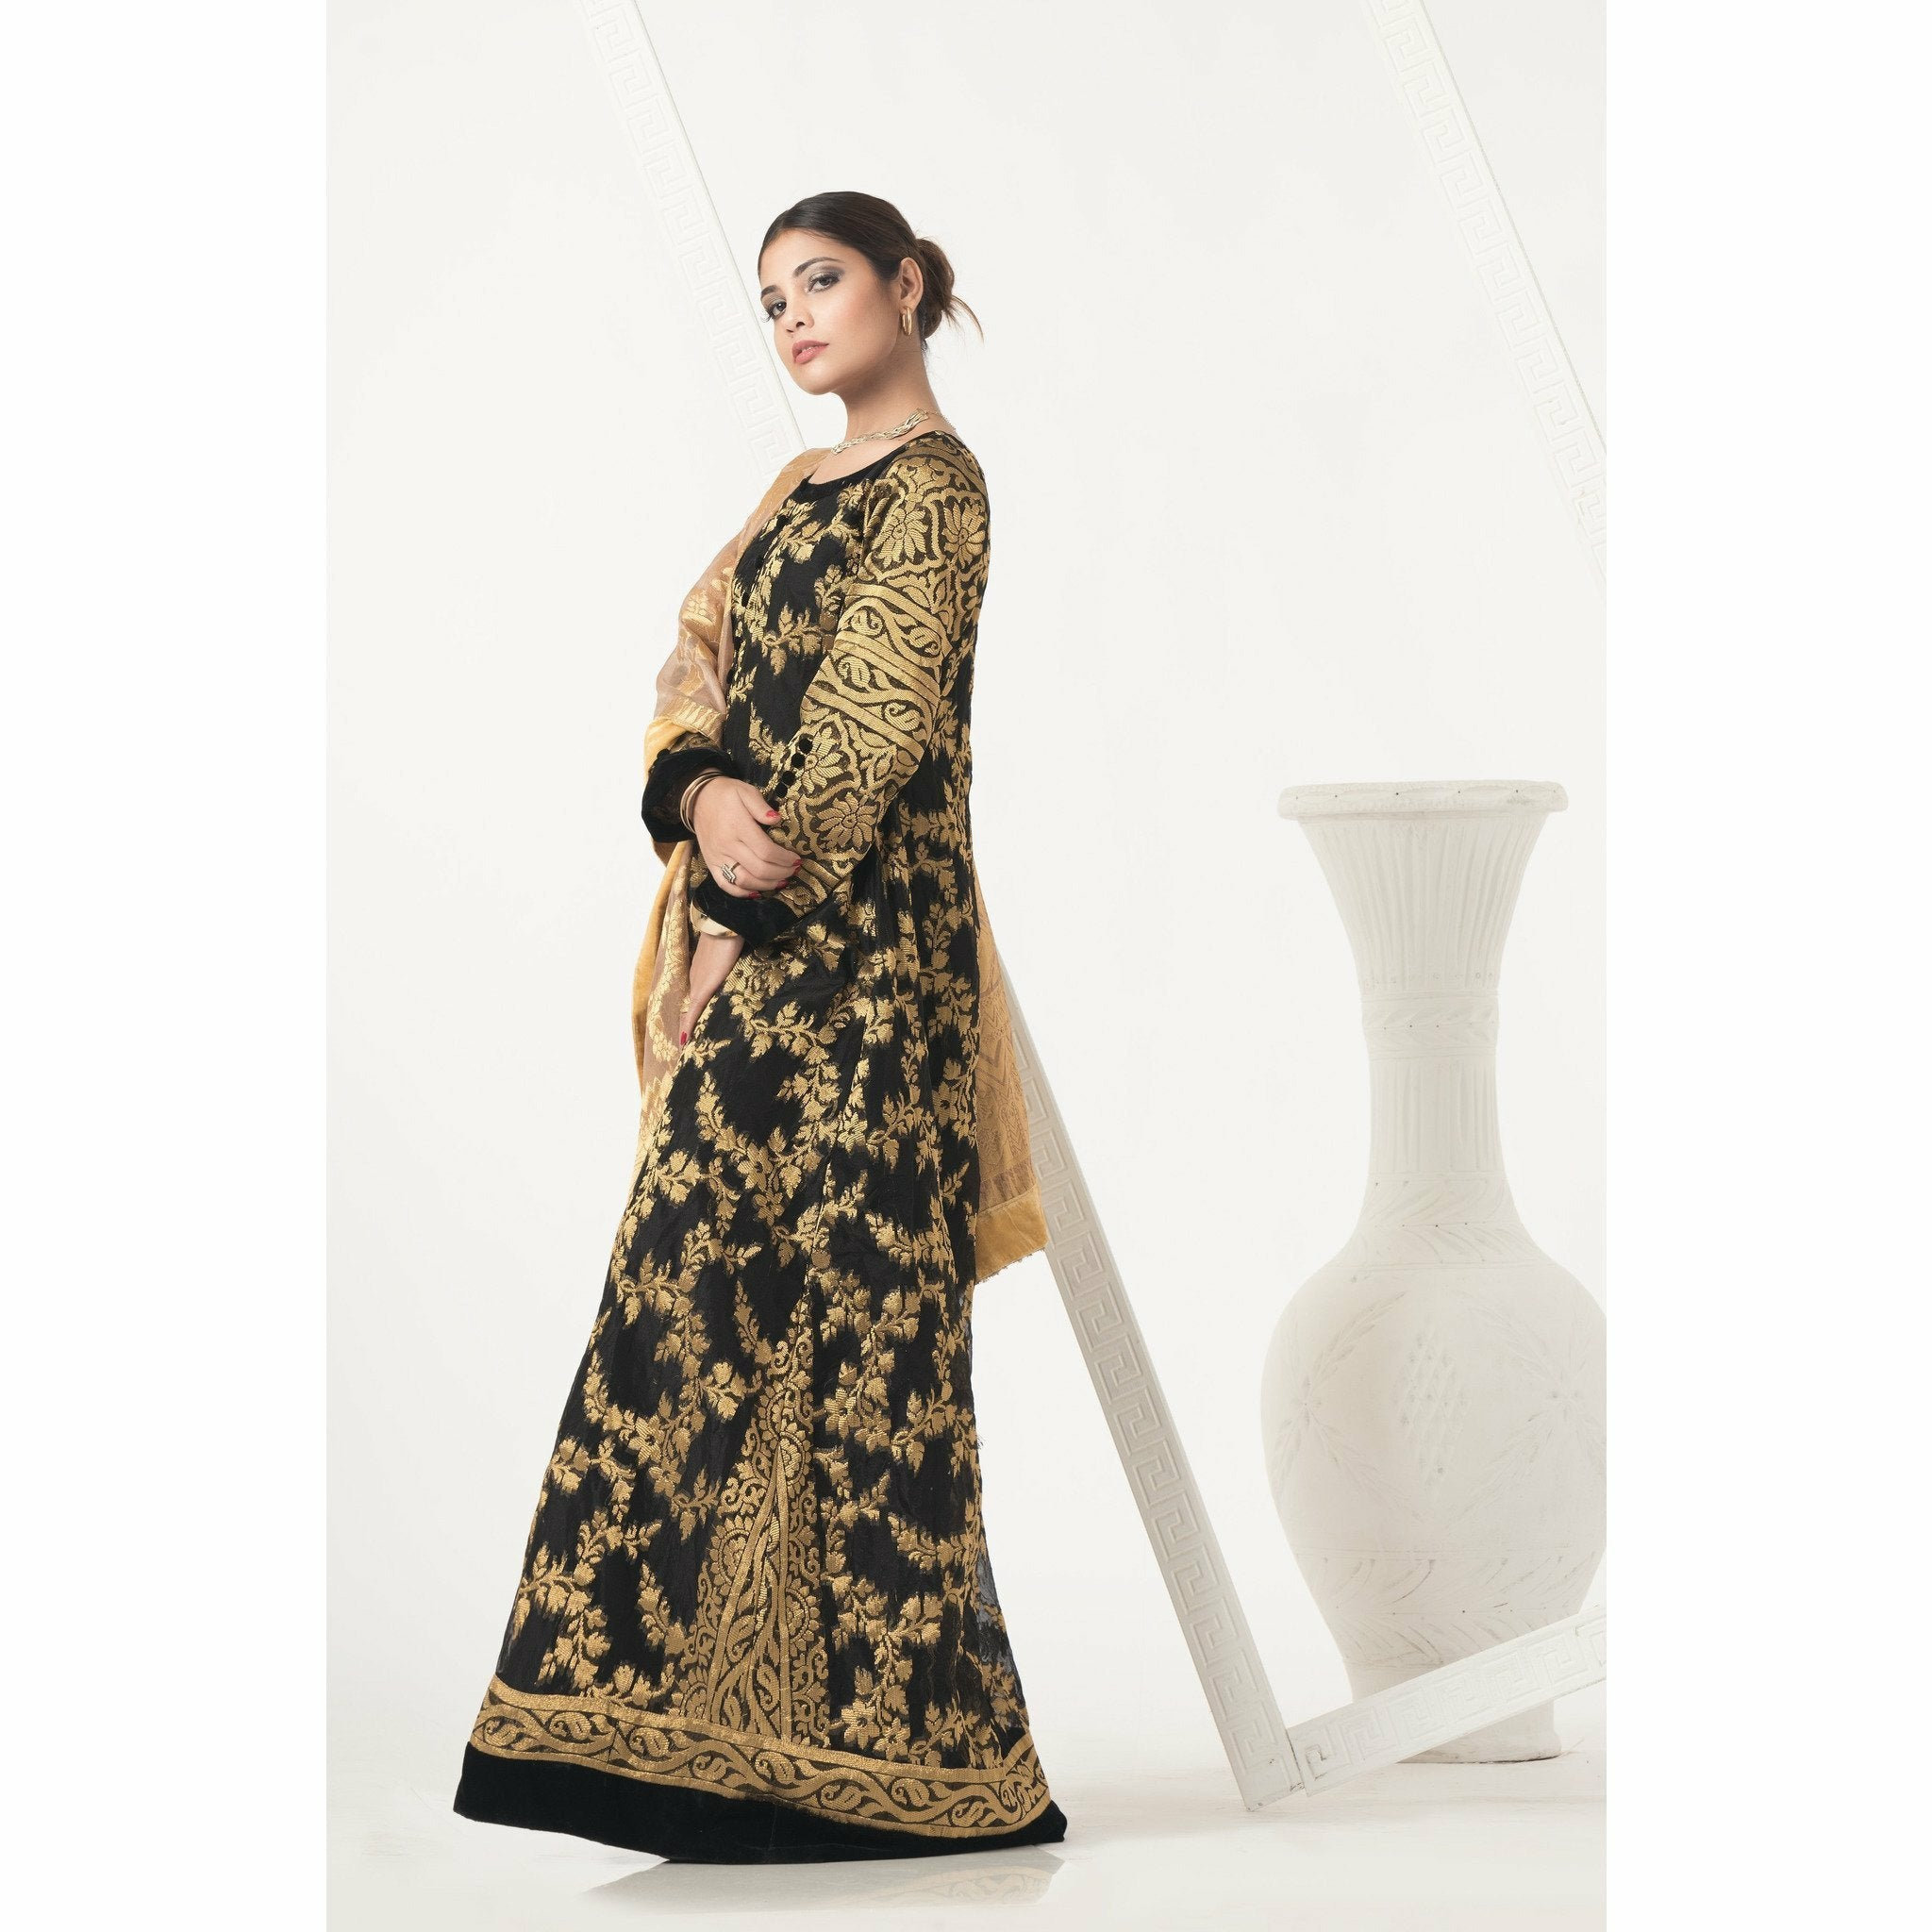 shalwar kameez uk, ready made pakistani clothes uk, pakistani clothes online uk, asian clothing online, pakistani designer suits, salwar kameez uk